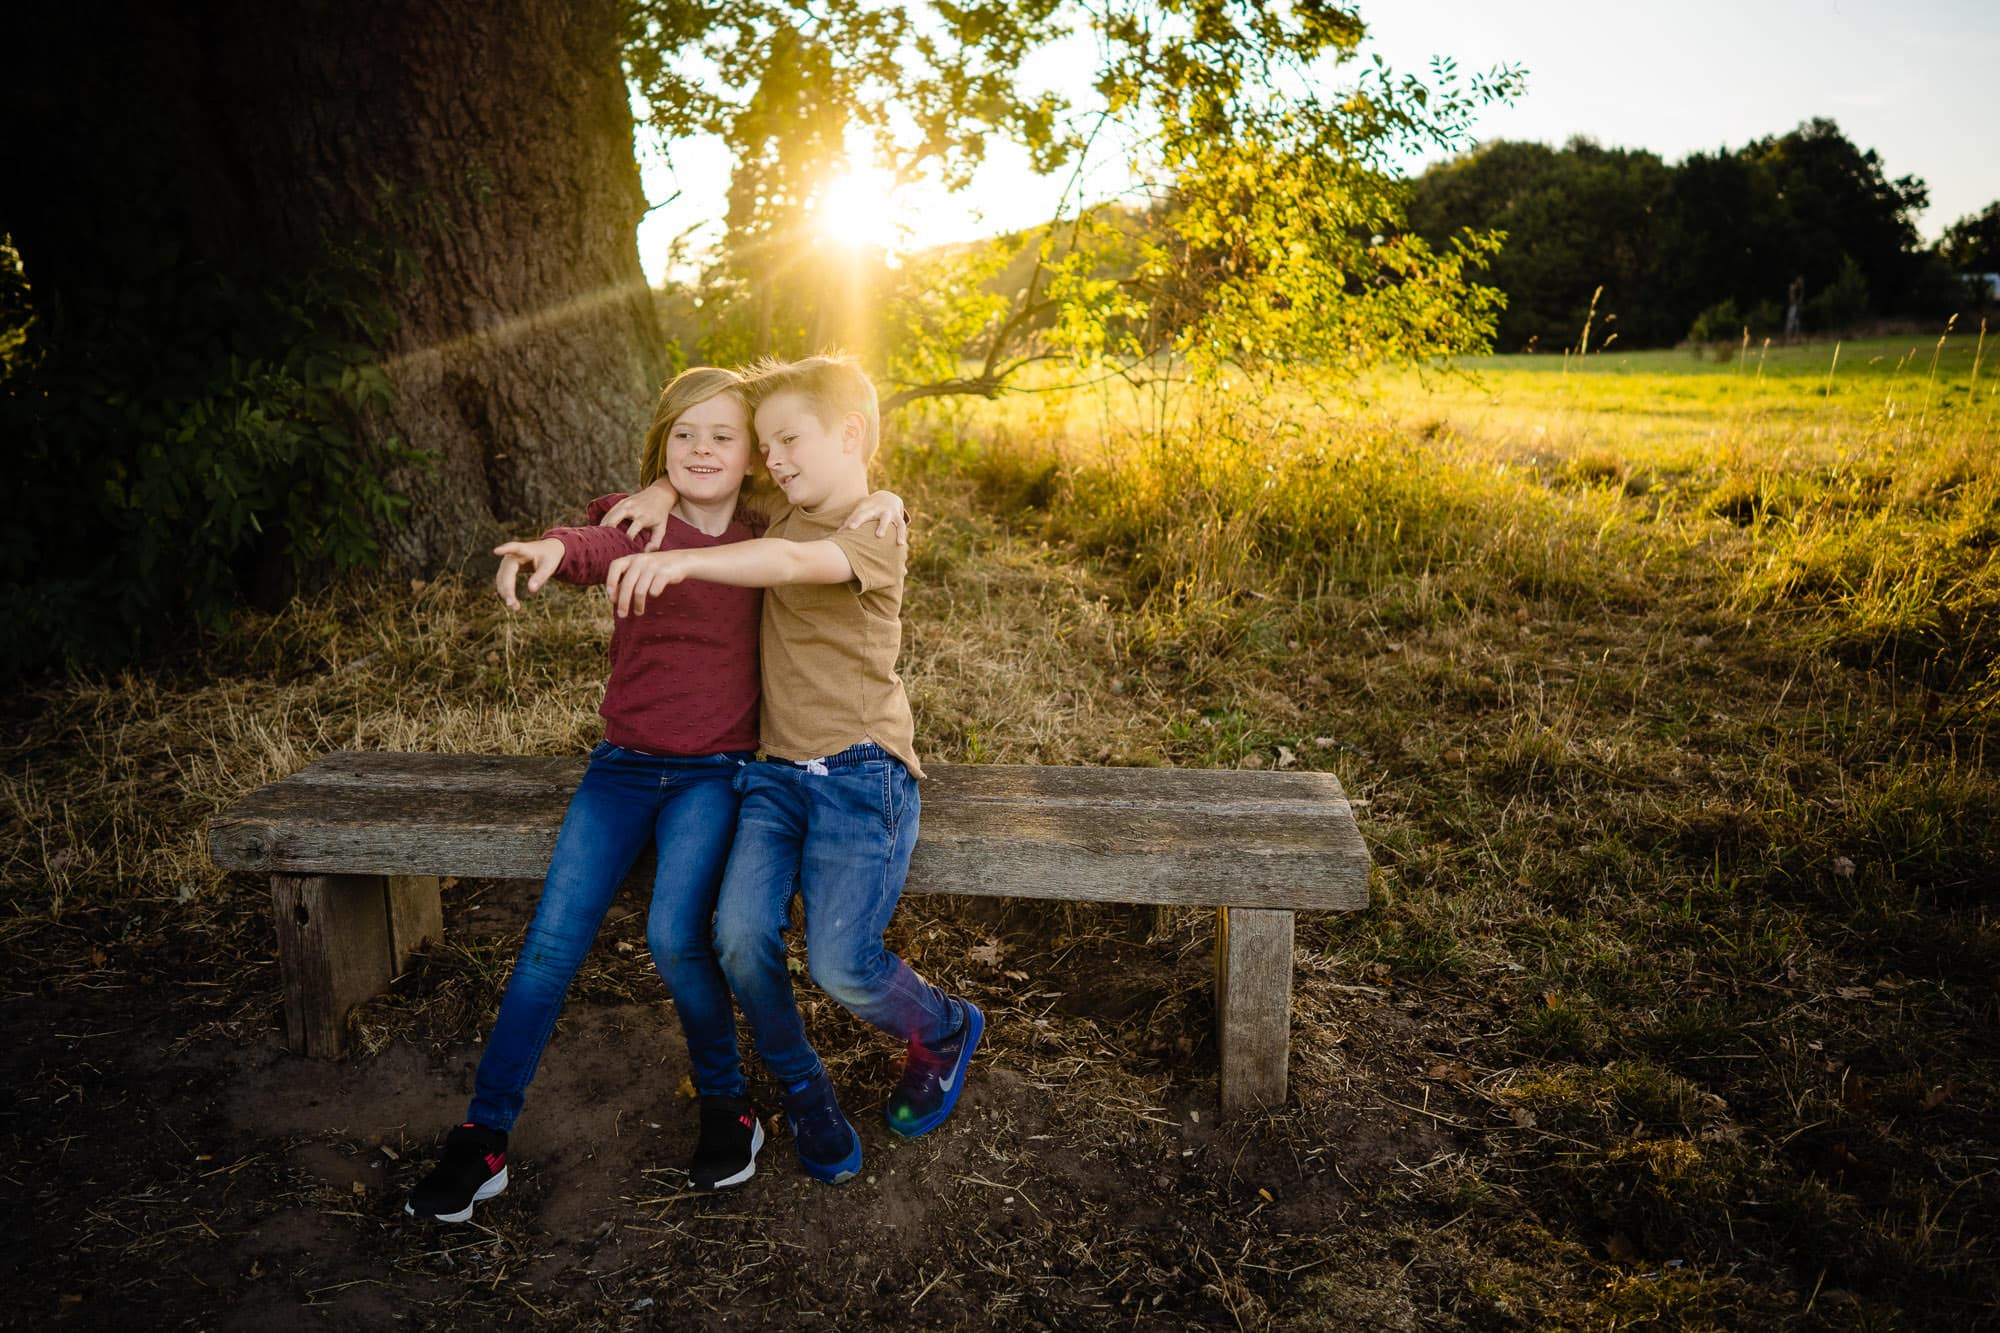 J & J | Family Photoshoot in Catton Park 8